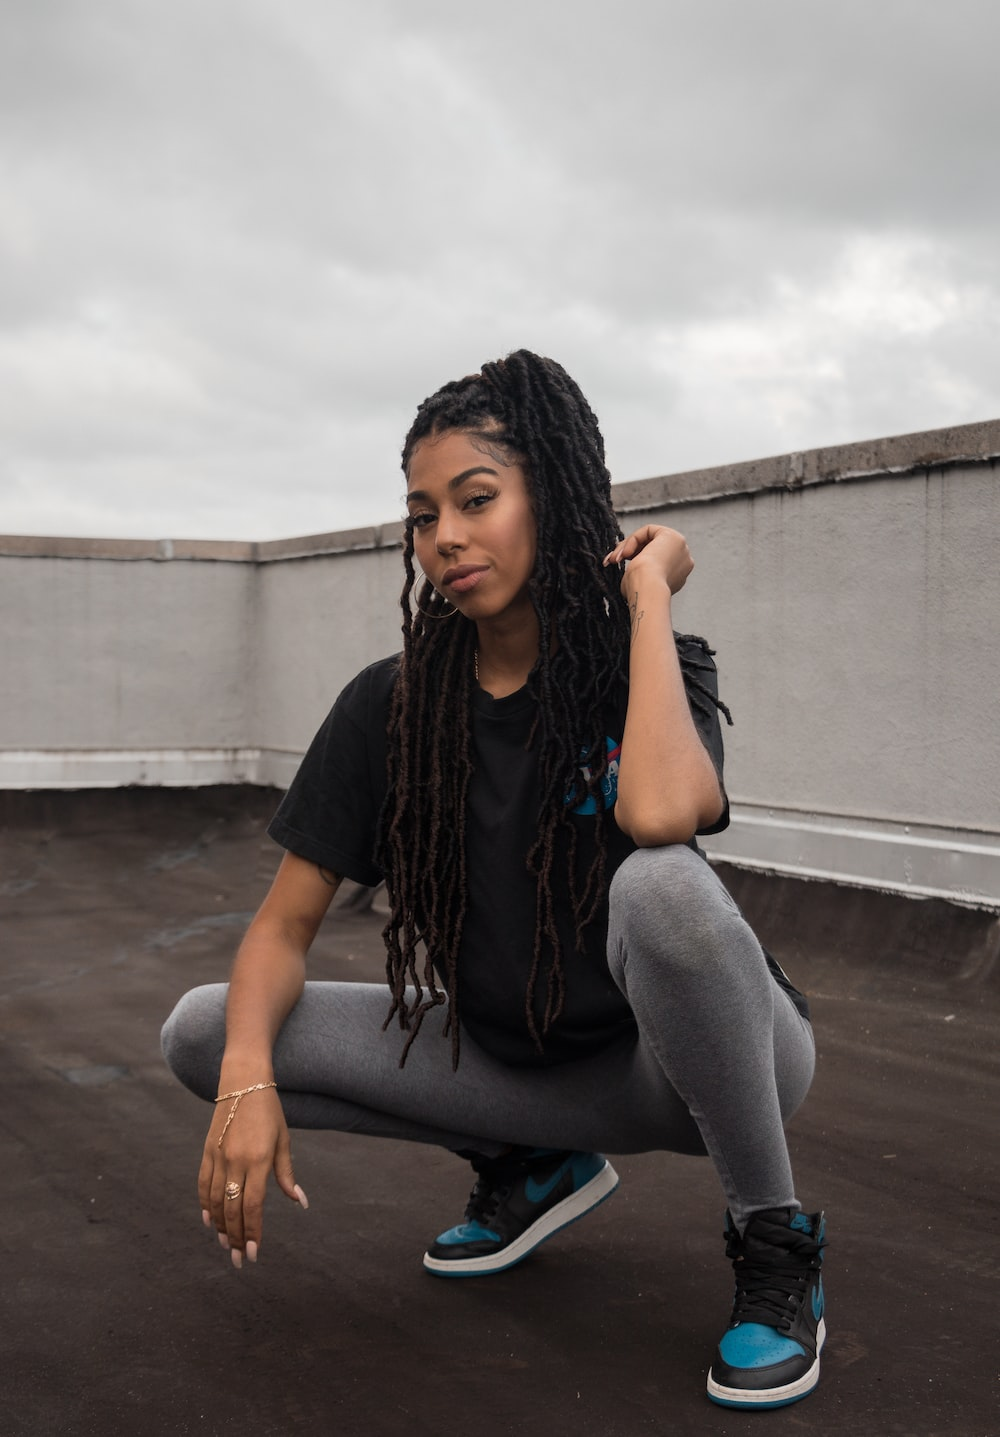 woman in black t-shirt and gray pants sitting on concrete wall during daytime